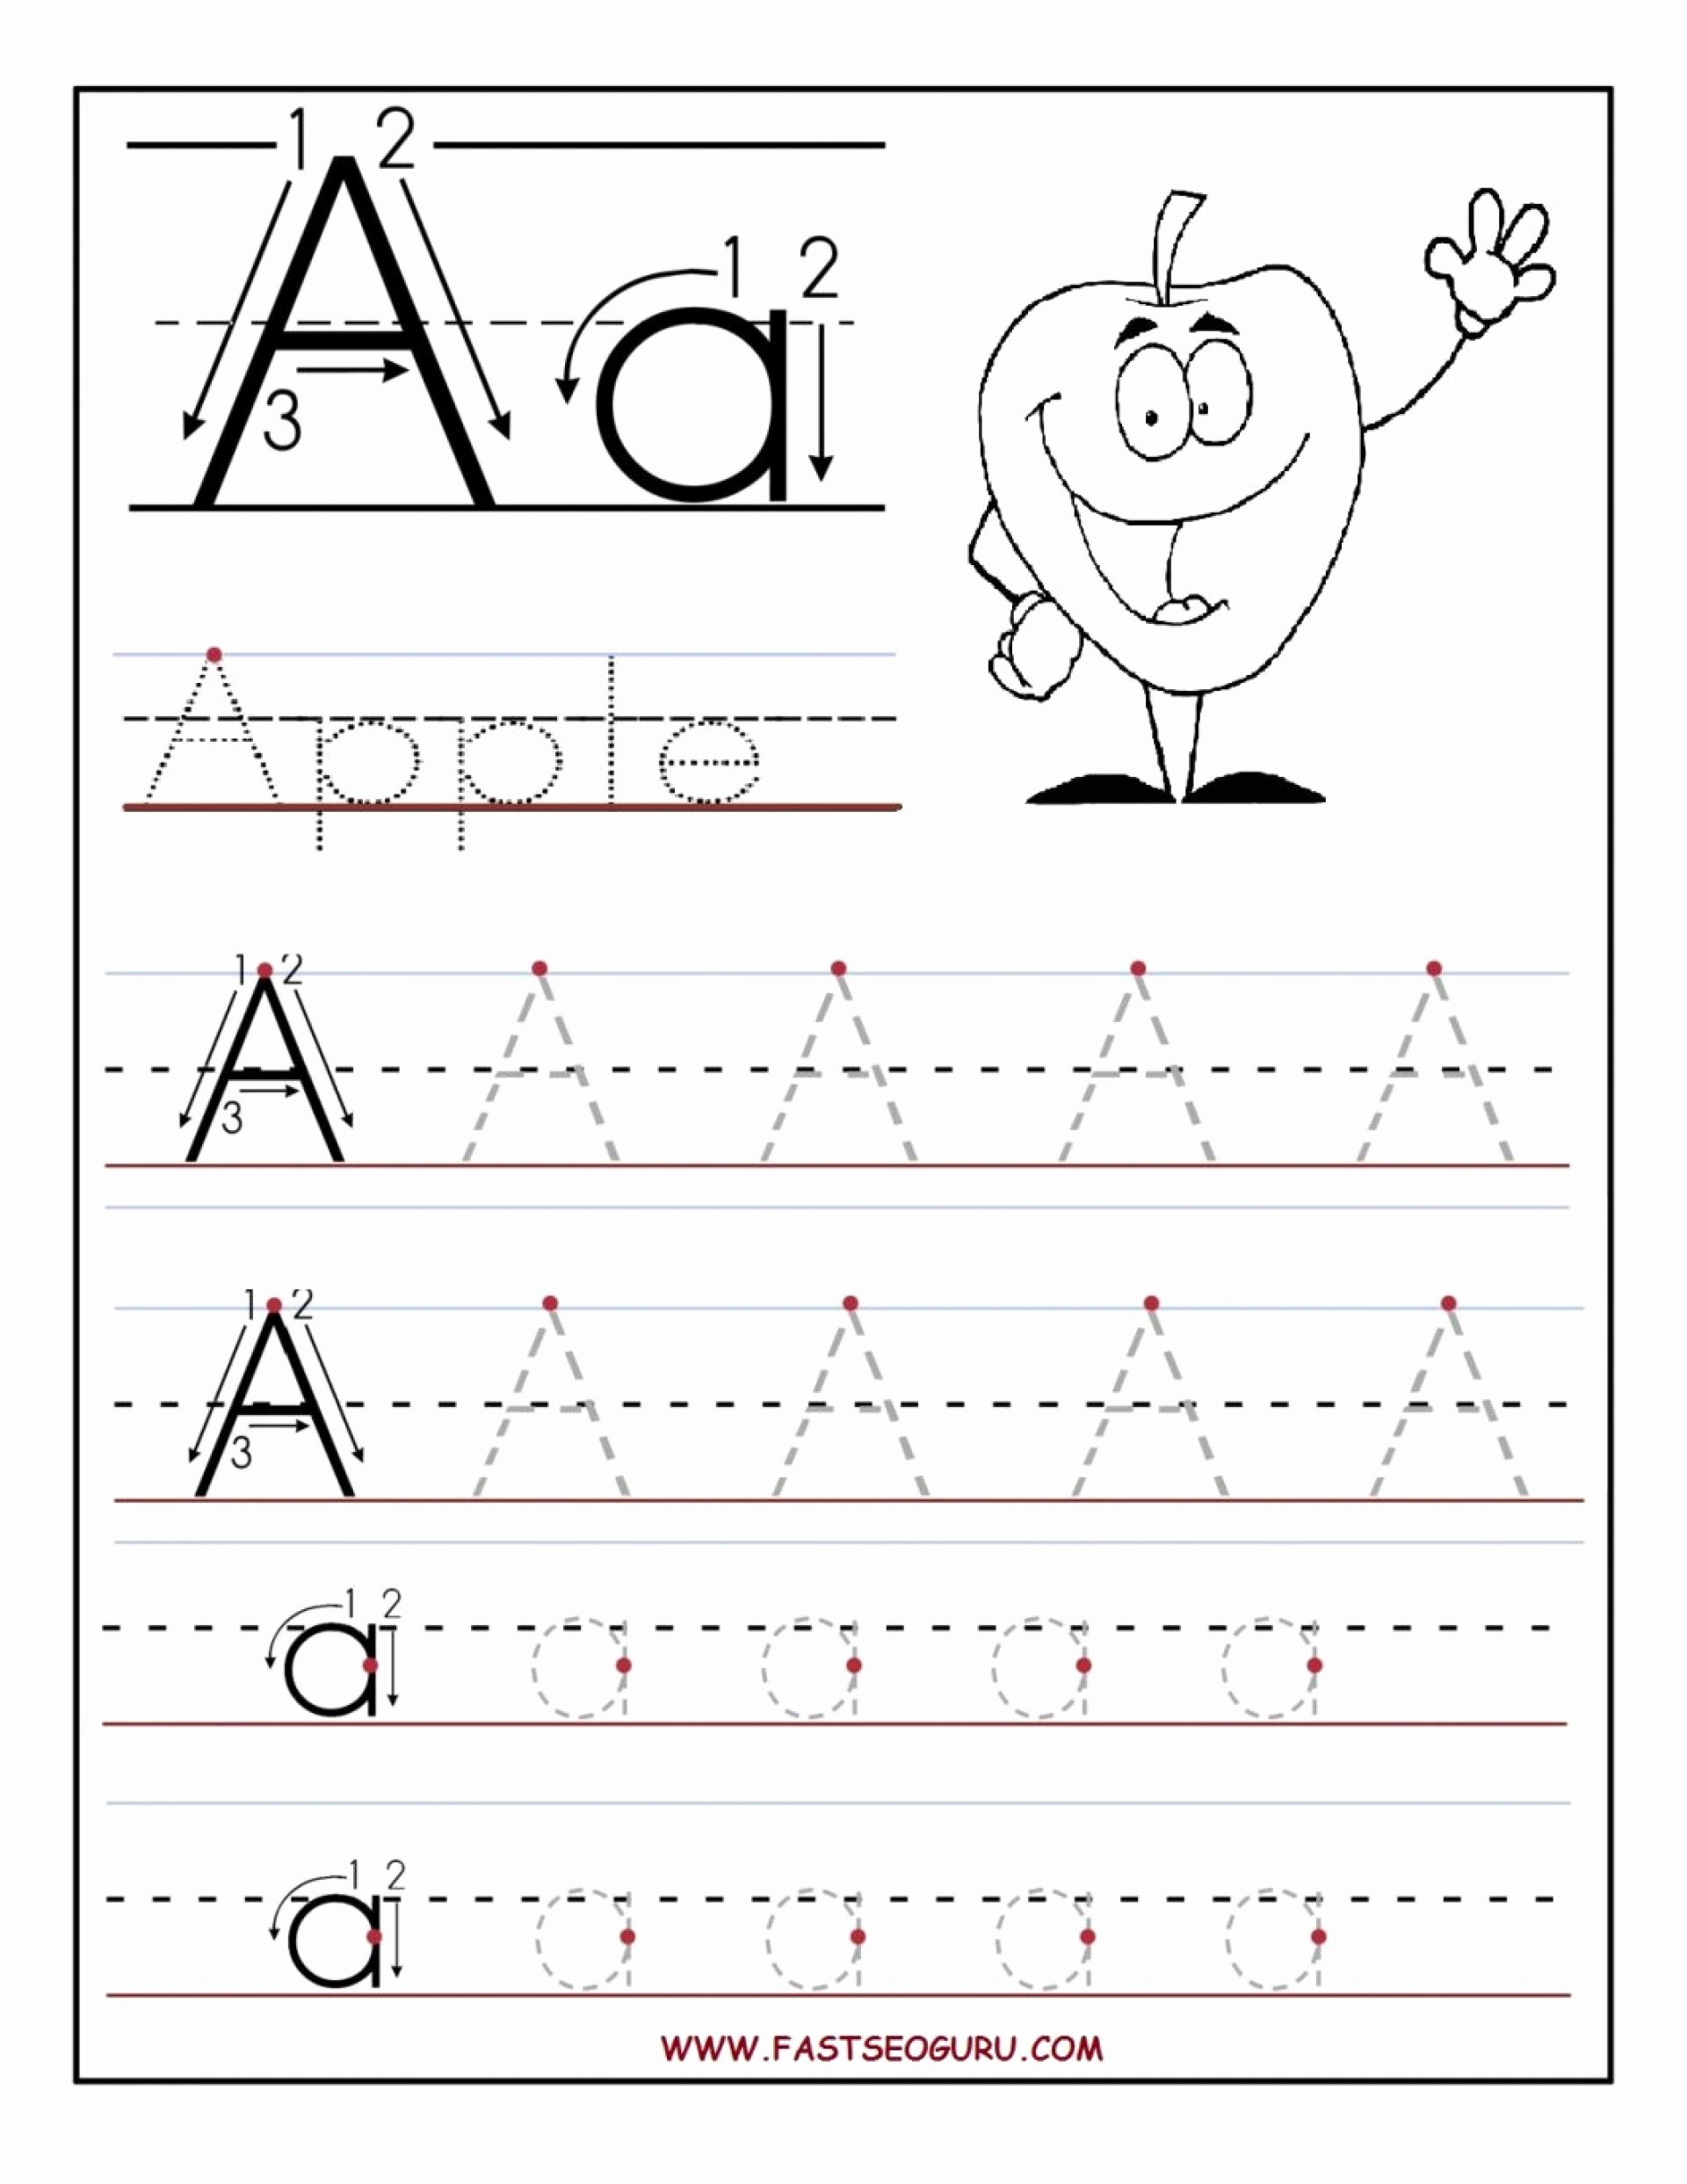 Printable Tracing Worksheets for Preschoolers Best Of Worksheet Worksheet Trace Letters Tracing Worksheets for